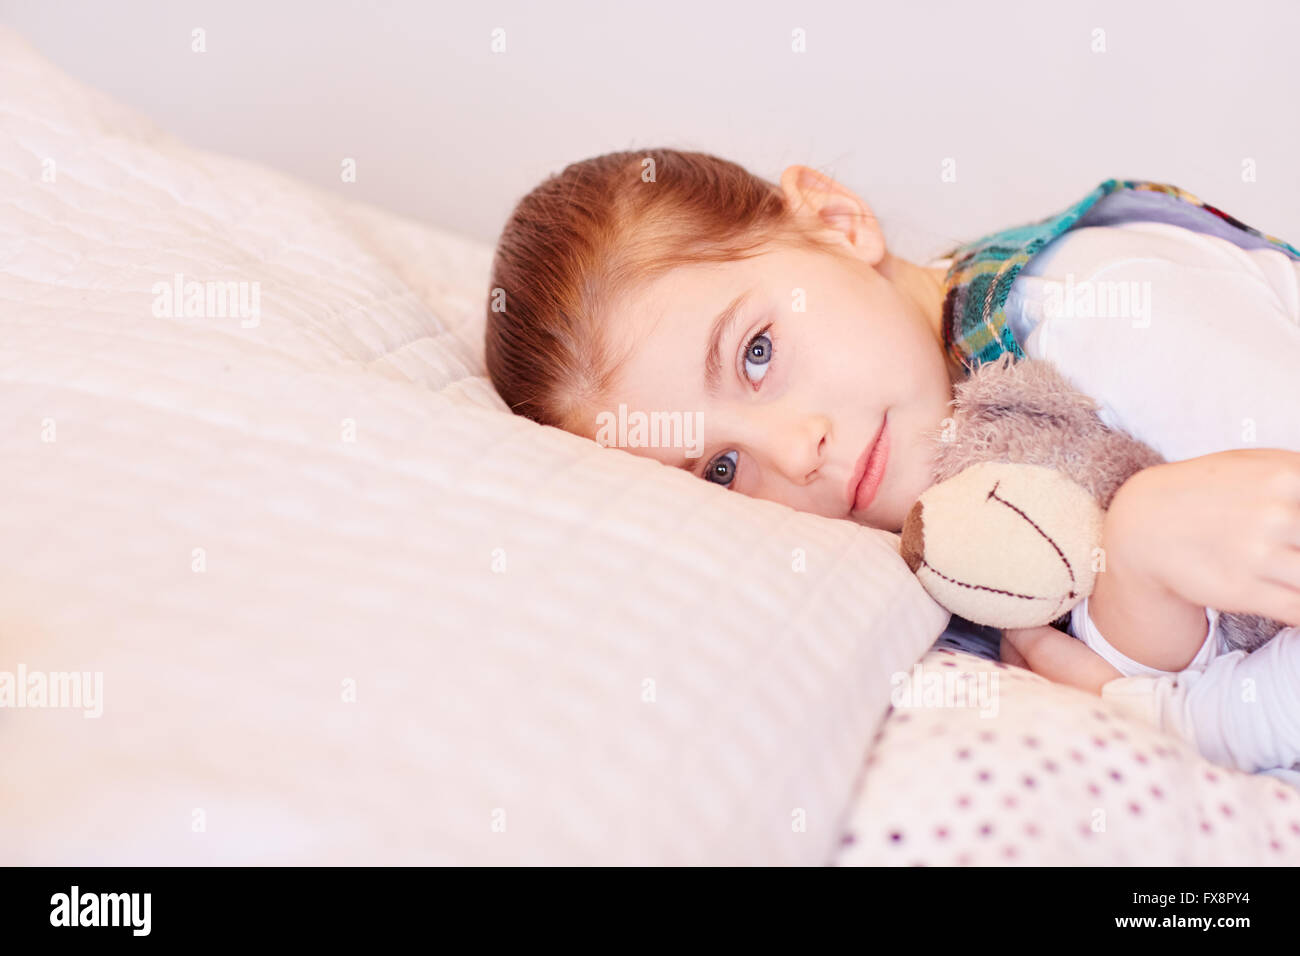 Feeling a little sleepy - Stock Image